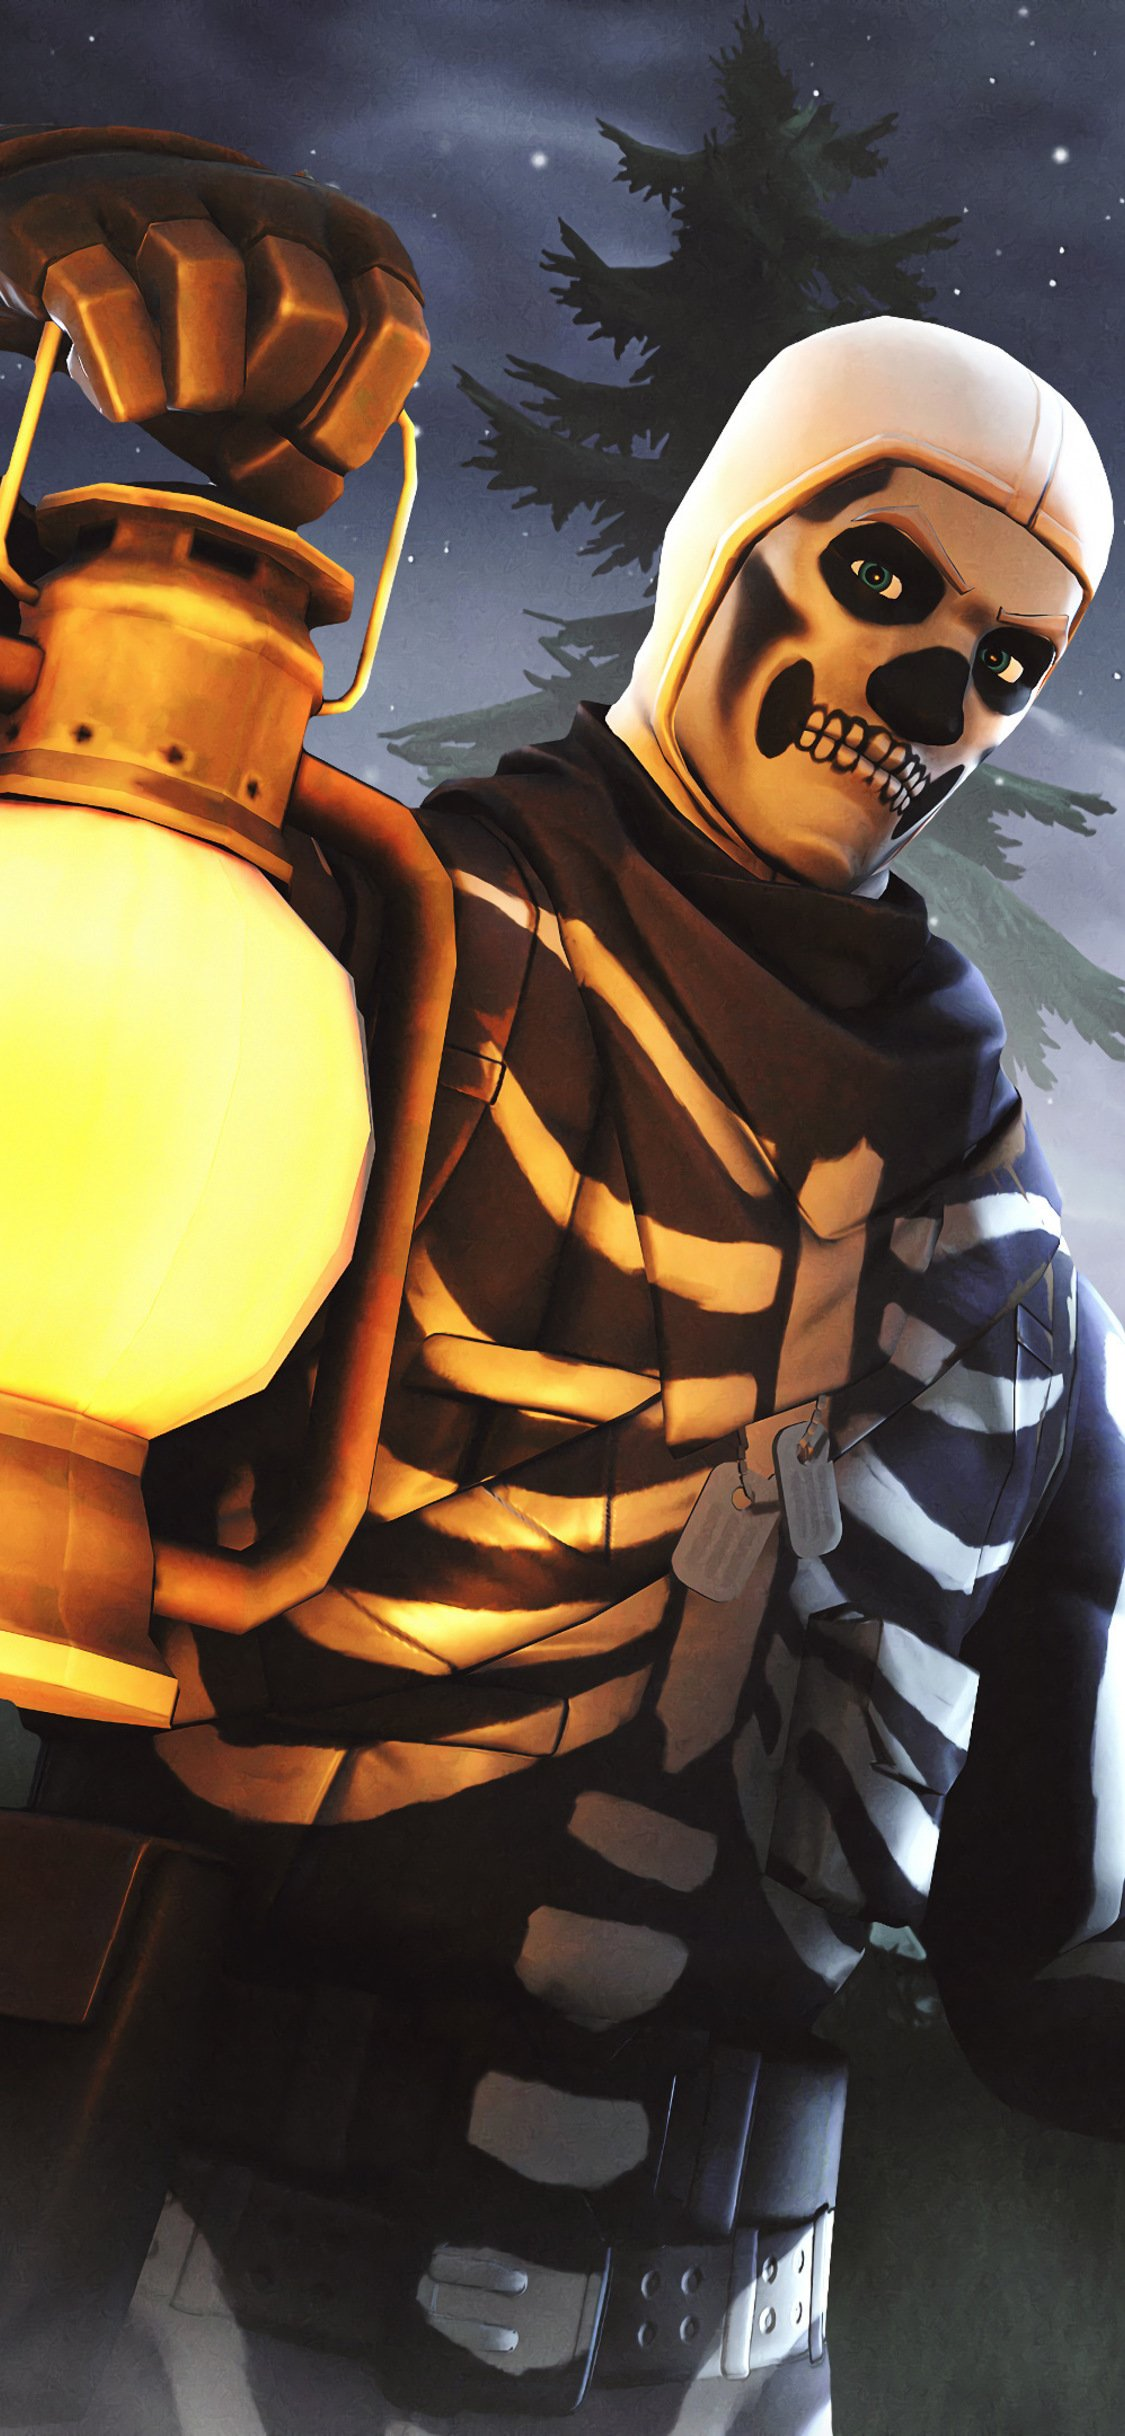 Skull Trooper Iphone XS Fortnite Background 4299 Wallpapers and 1125x2436